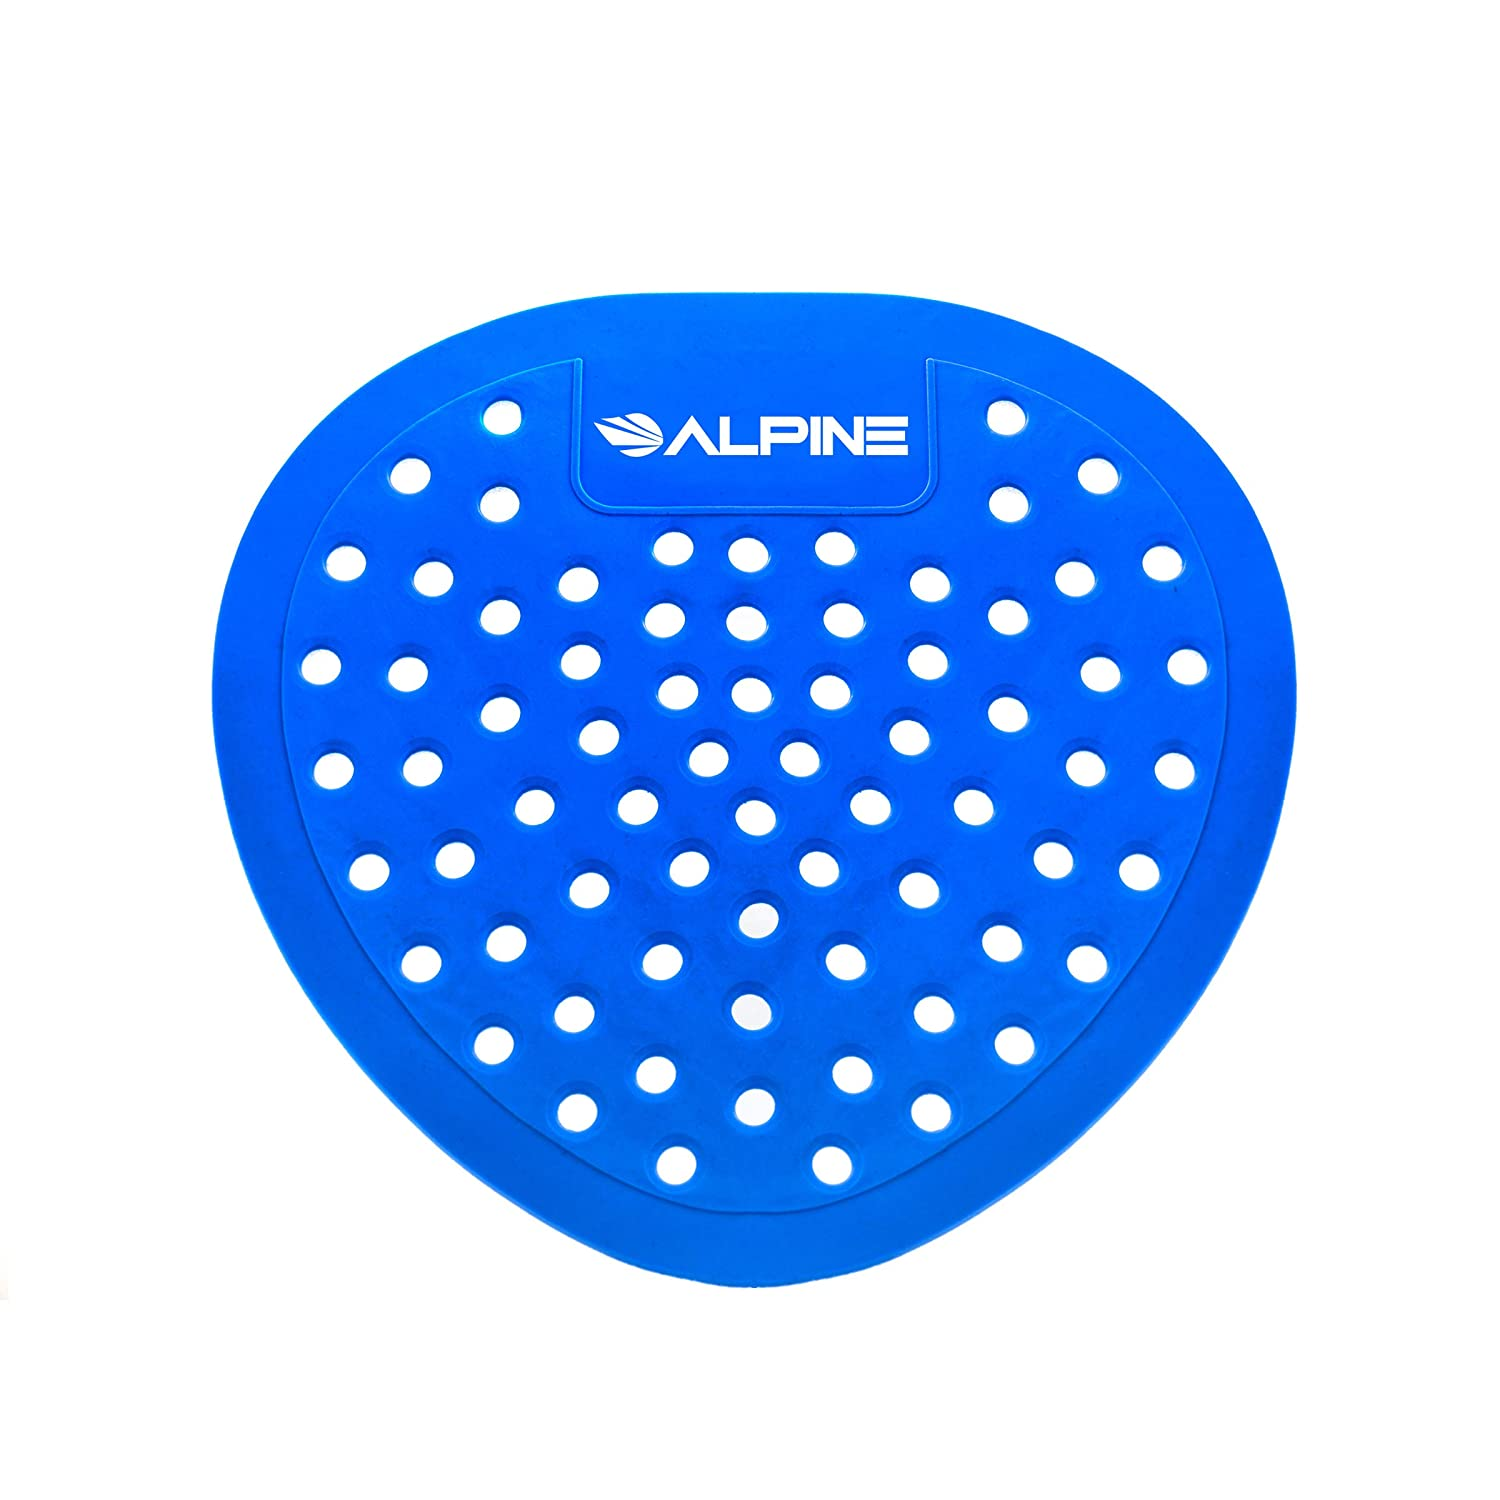 Urinal Screen Deodorizer 10 Pack Extra Duty Urinal Screen Odor Neutralizer Anti Splash Urinal Cake Mat Ideal For Schools Restaurants Bubble Gum Scent Lasts Up To 5000 Flushes Amazon Com Industrial Scientific